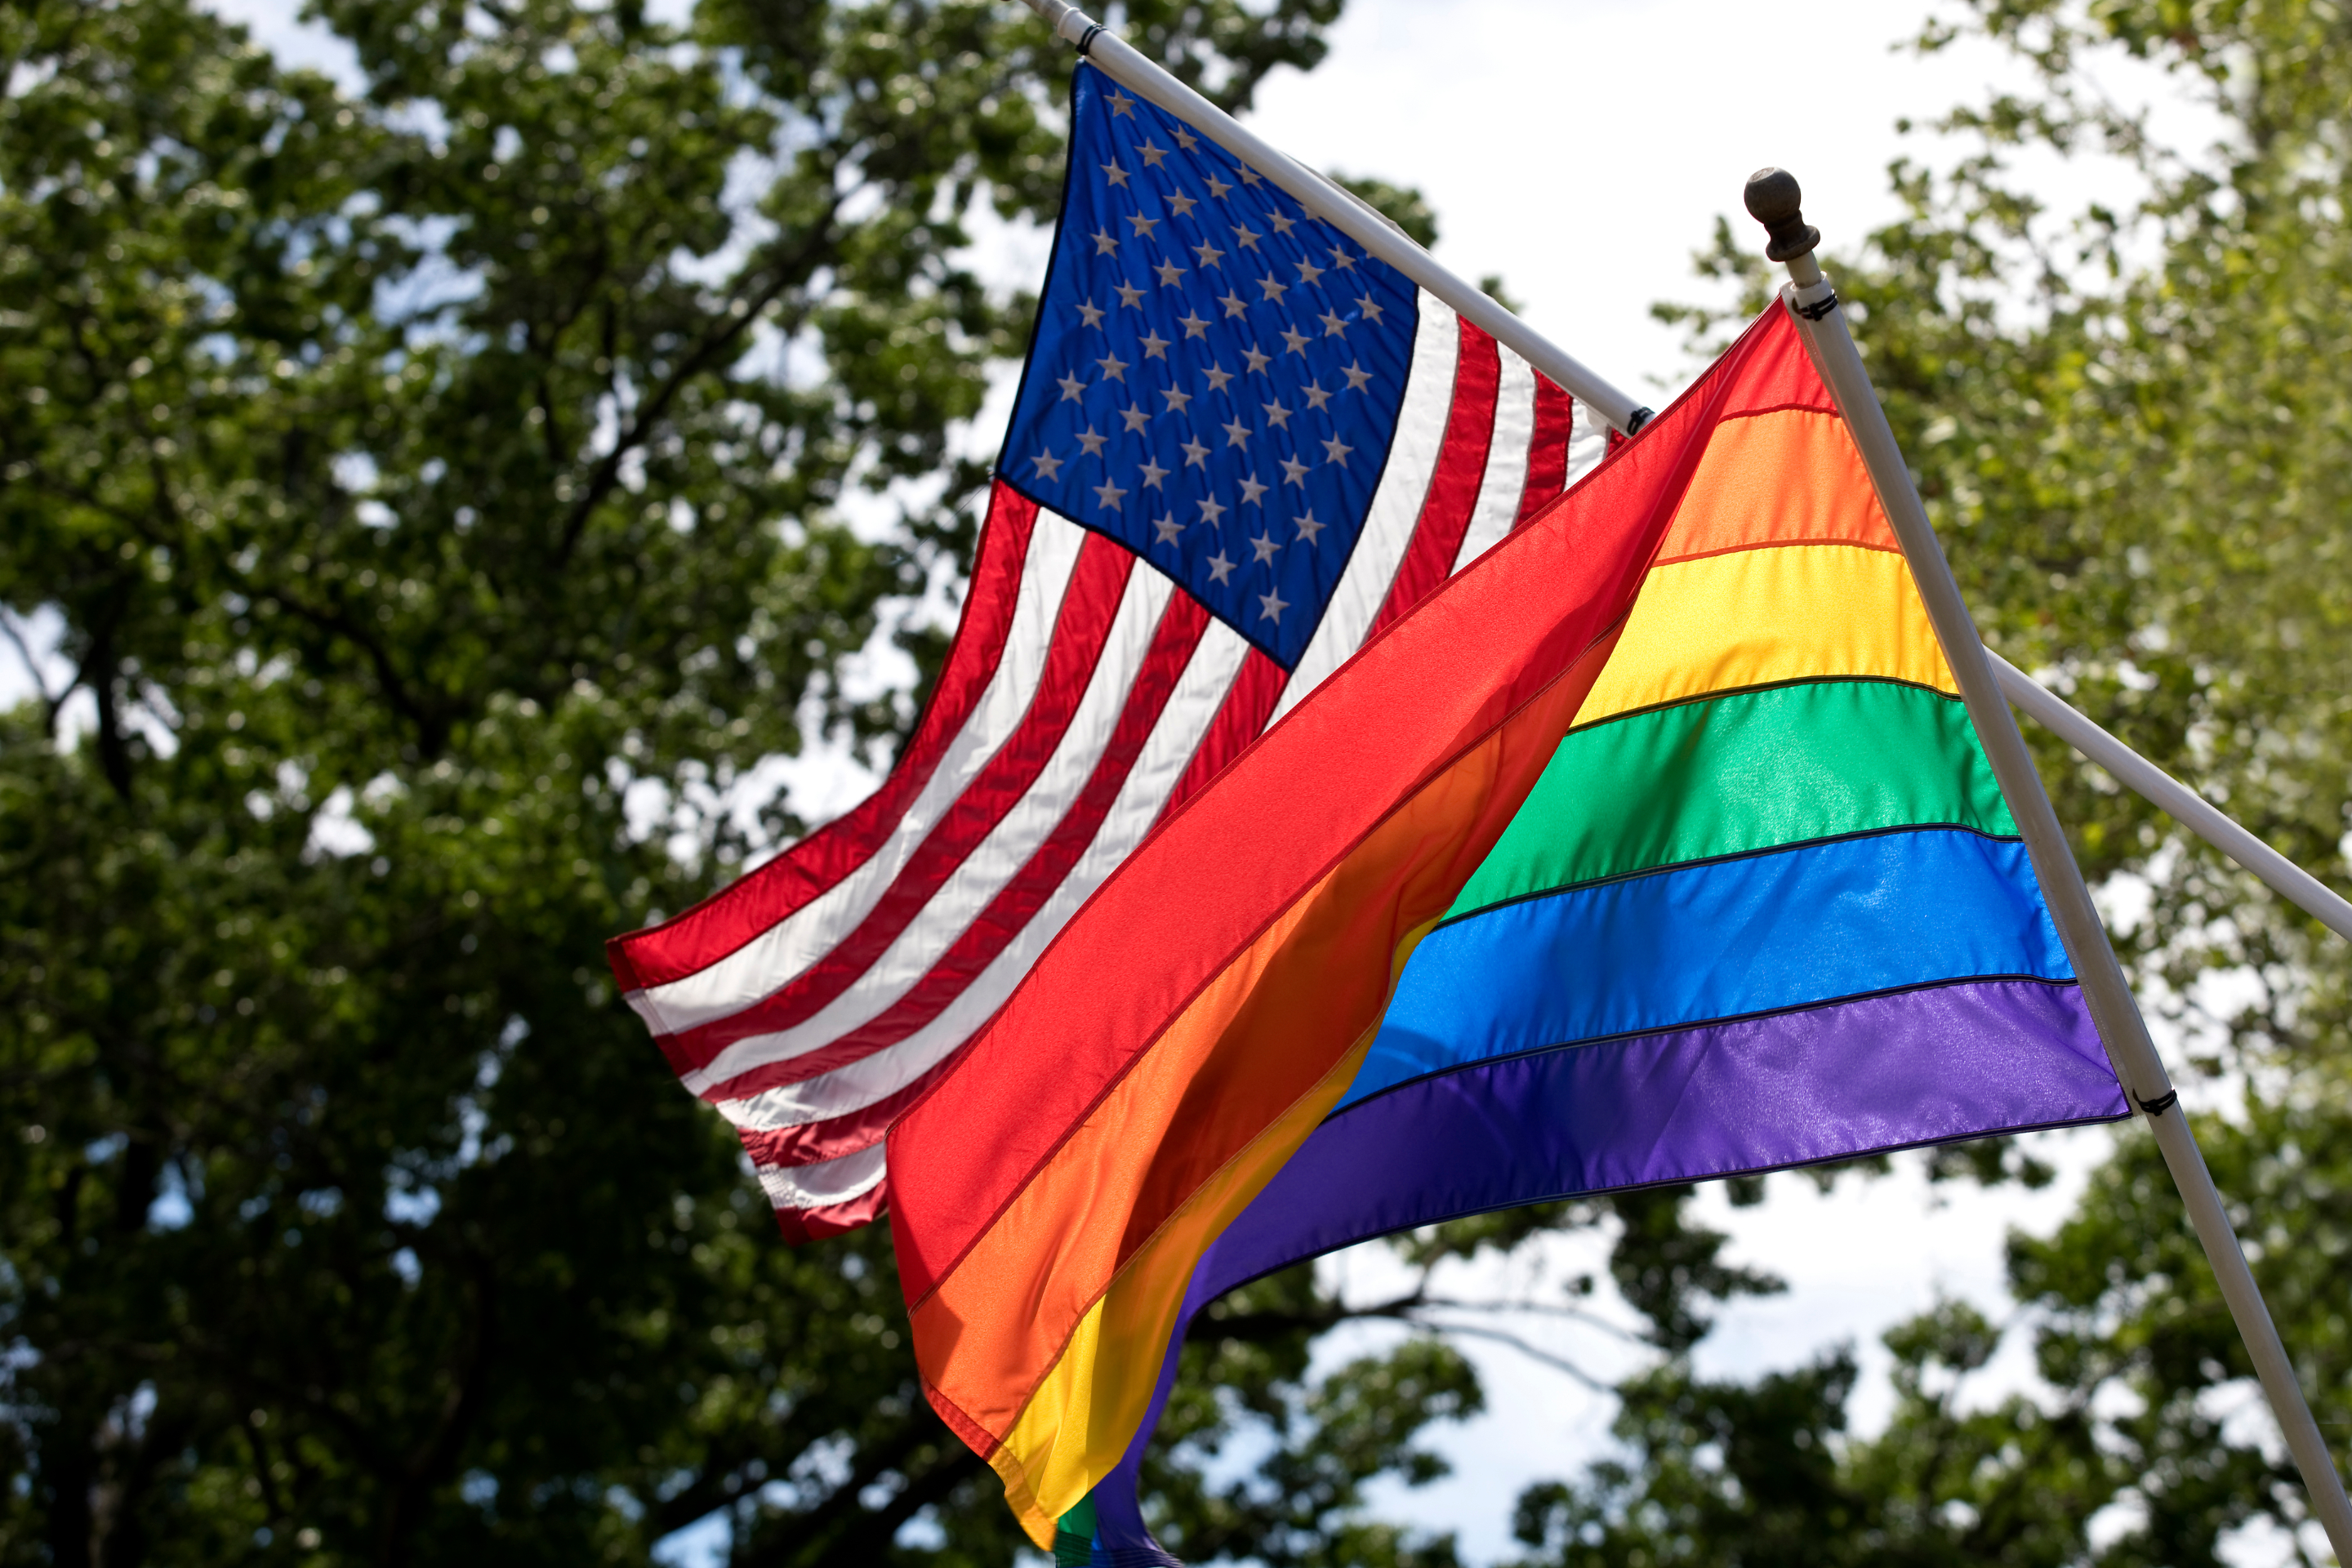 The rainbow pride and American flags fly in the wind together.